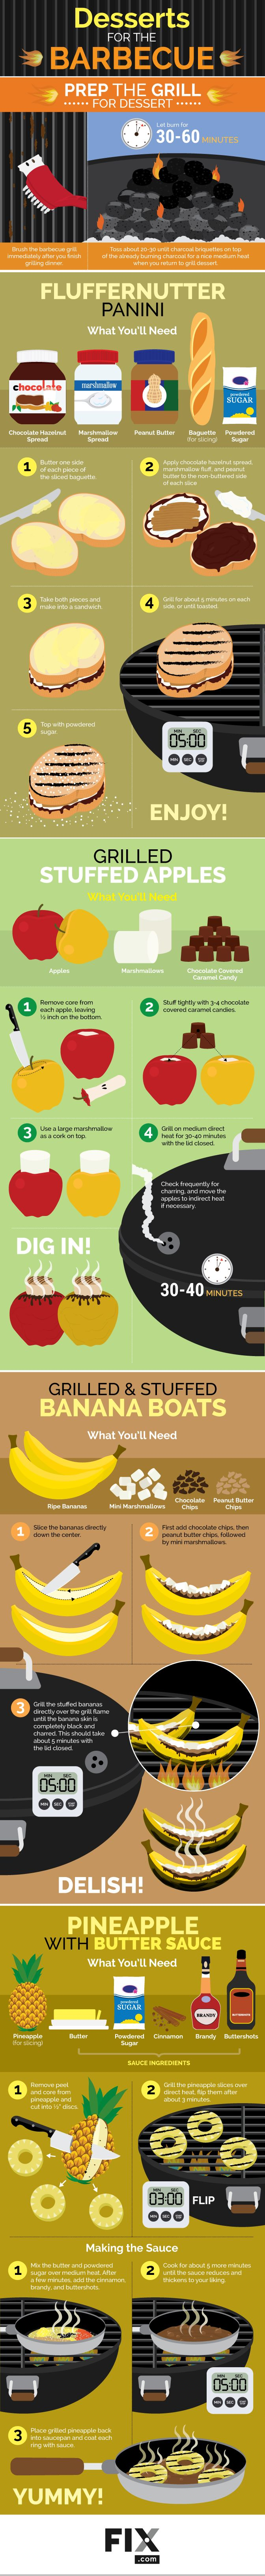 Desserts for the Barbecue #Infographic #Food